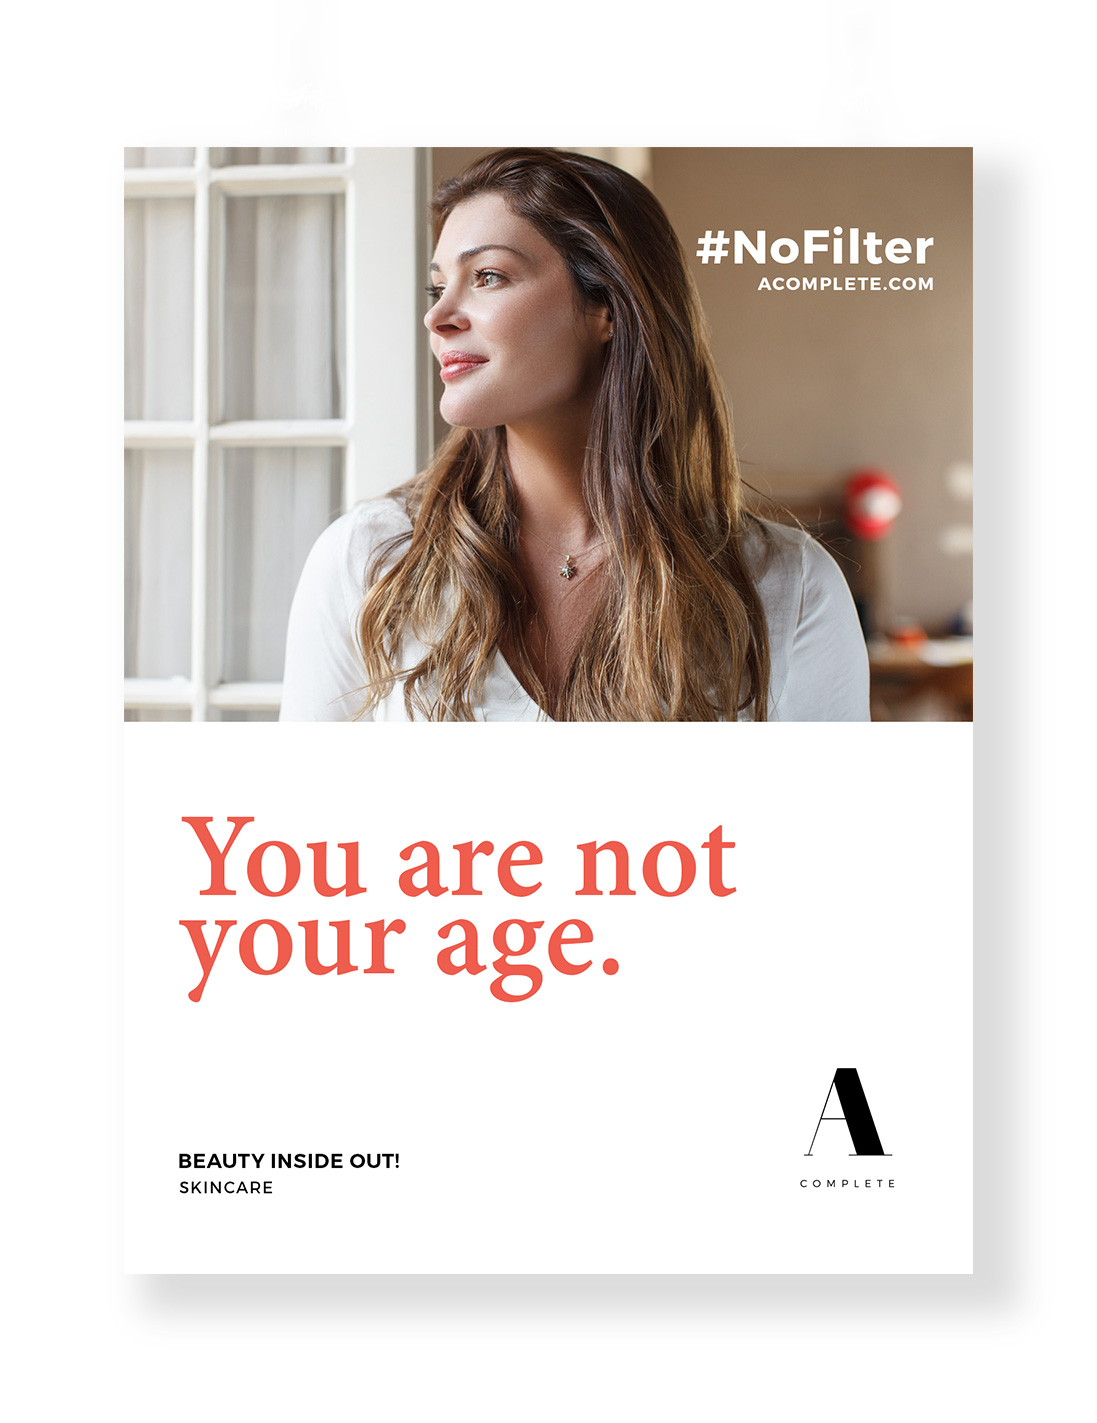 #NoFilter poster ad campaign